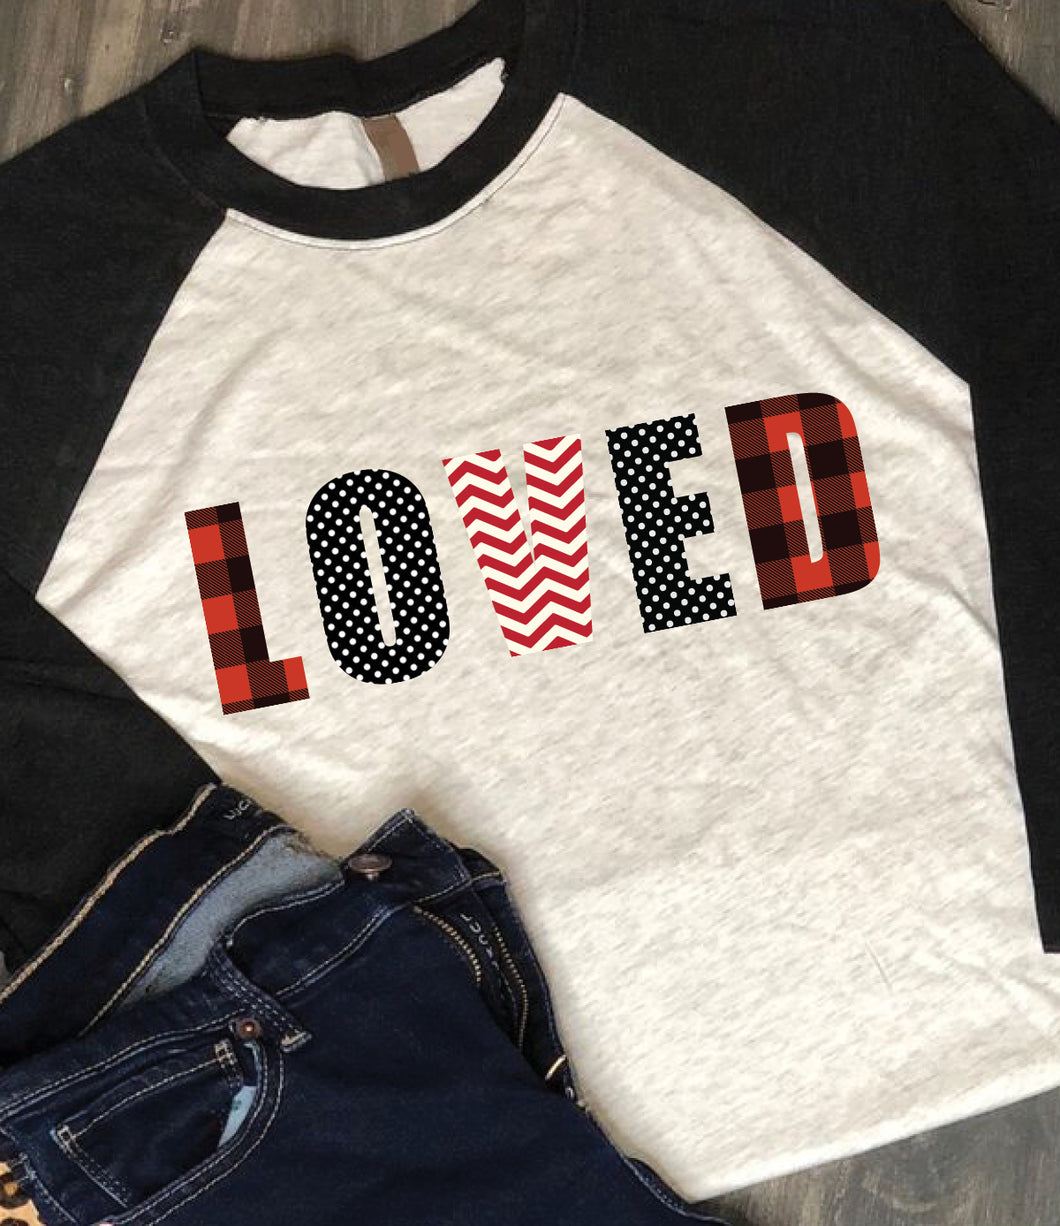 Valentine's Day Shirt: LOVED